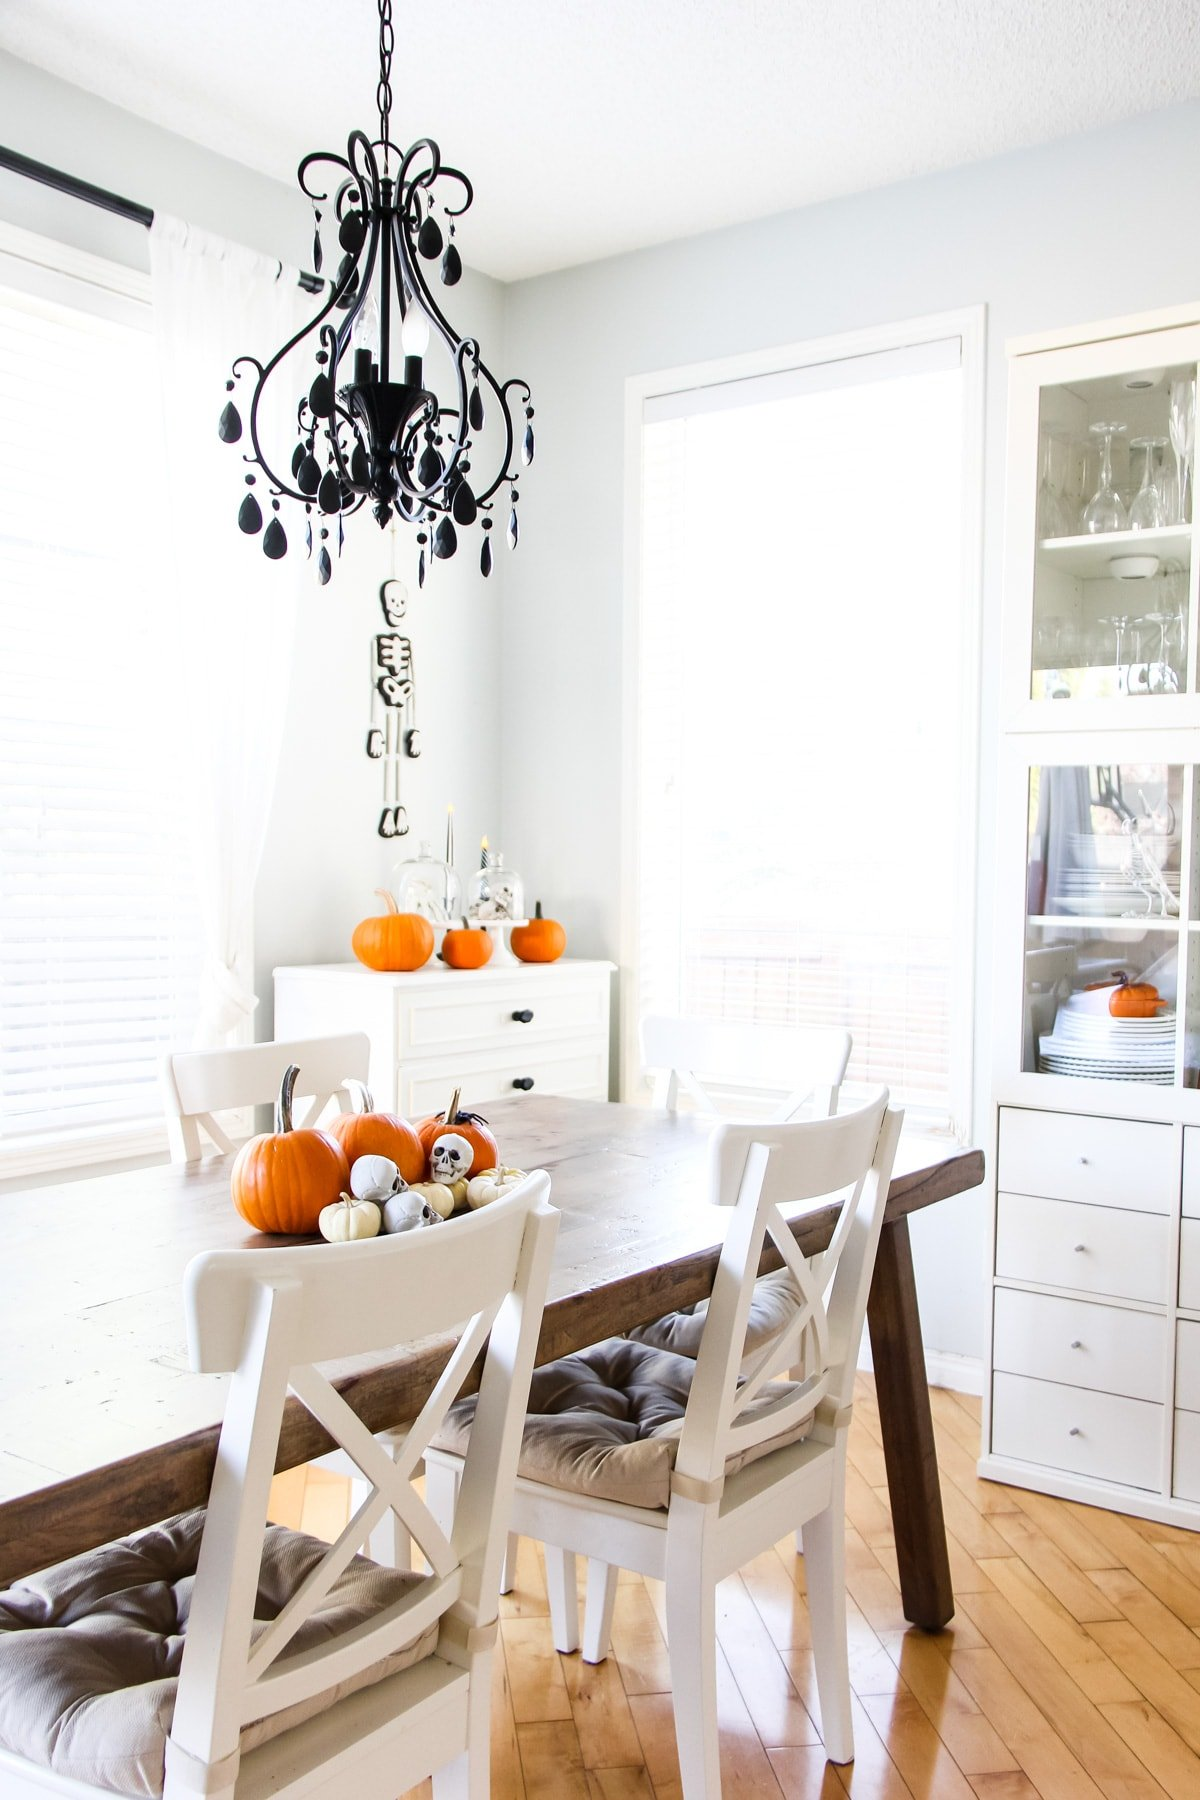 a wooden kitchen table and white chairs. hanging from the ceiling is a black chandelier. on the table are orange pumpkins and mini skulls. in the background is a white dresser with orange pumpkins on top